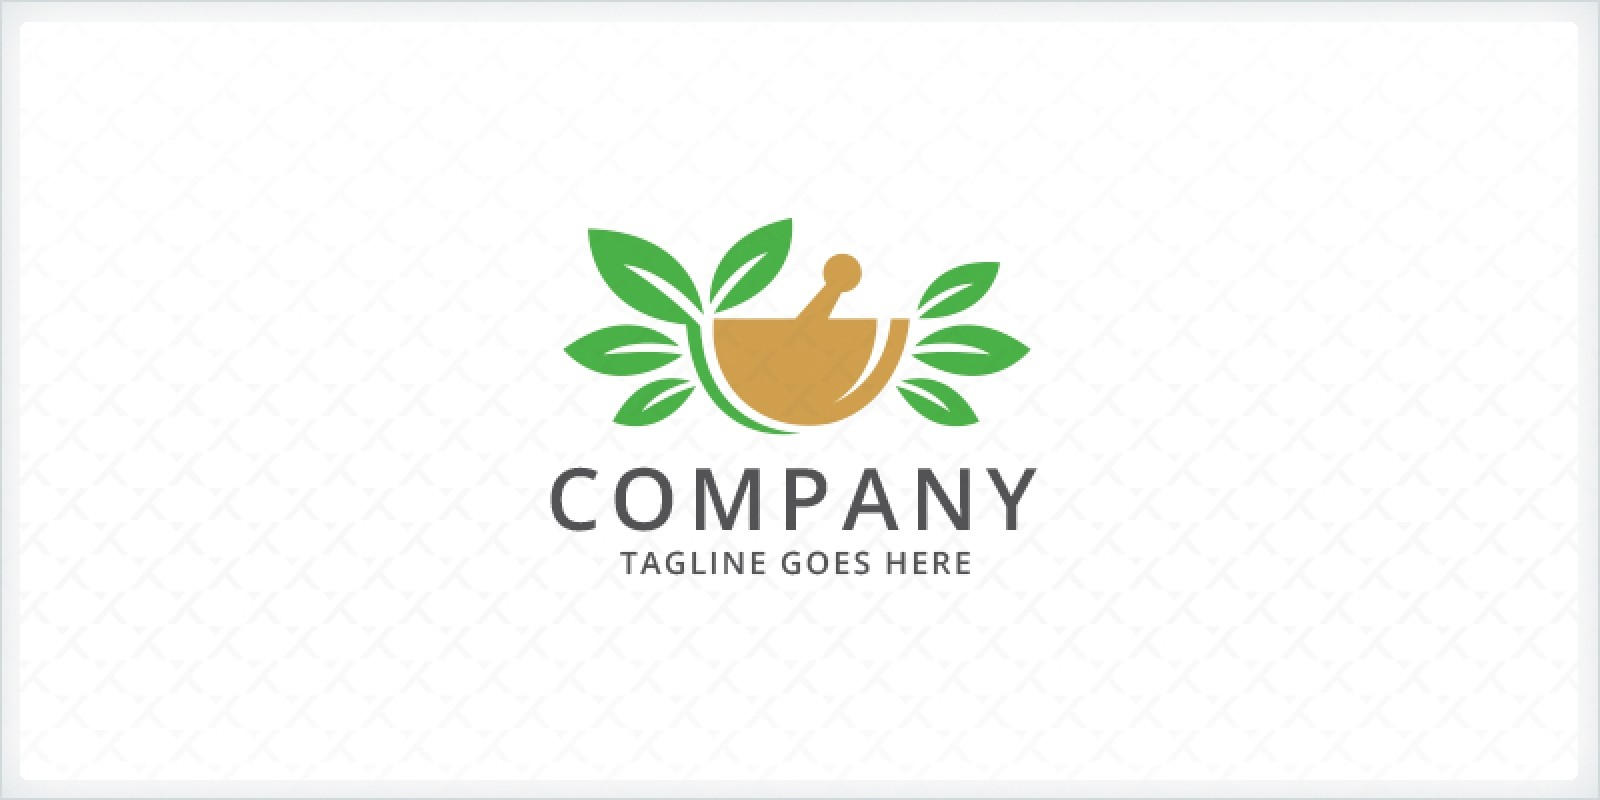 Mortar and Pestle - Pharmacy Logo